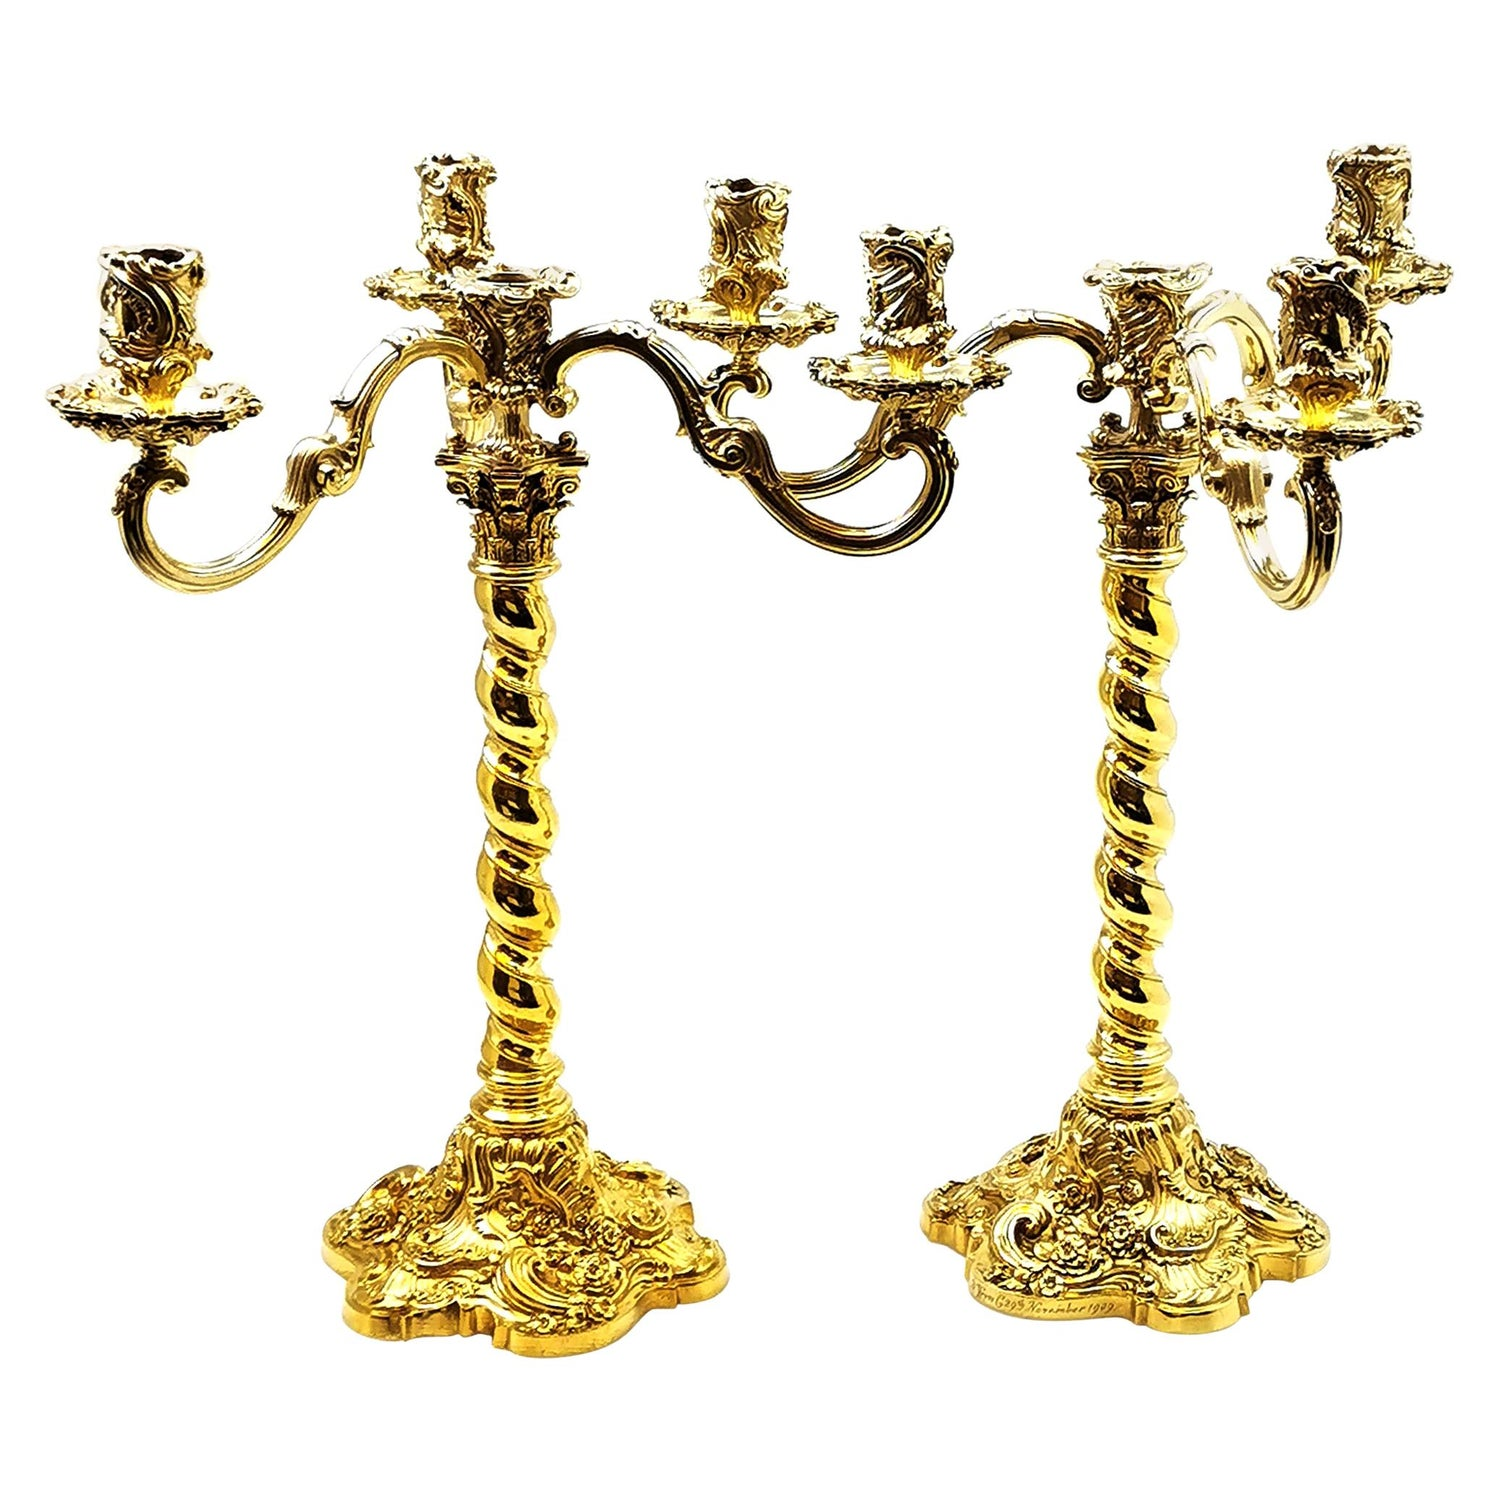 Antique Sterling Silver Gilt 4 Light Candelabra Candlesticks, 1909